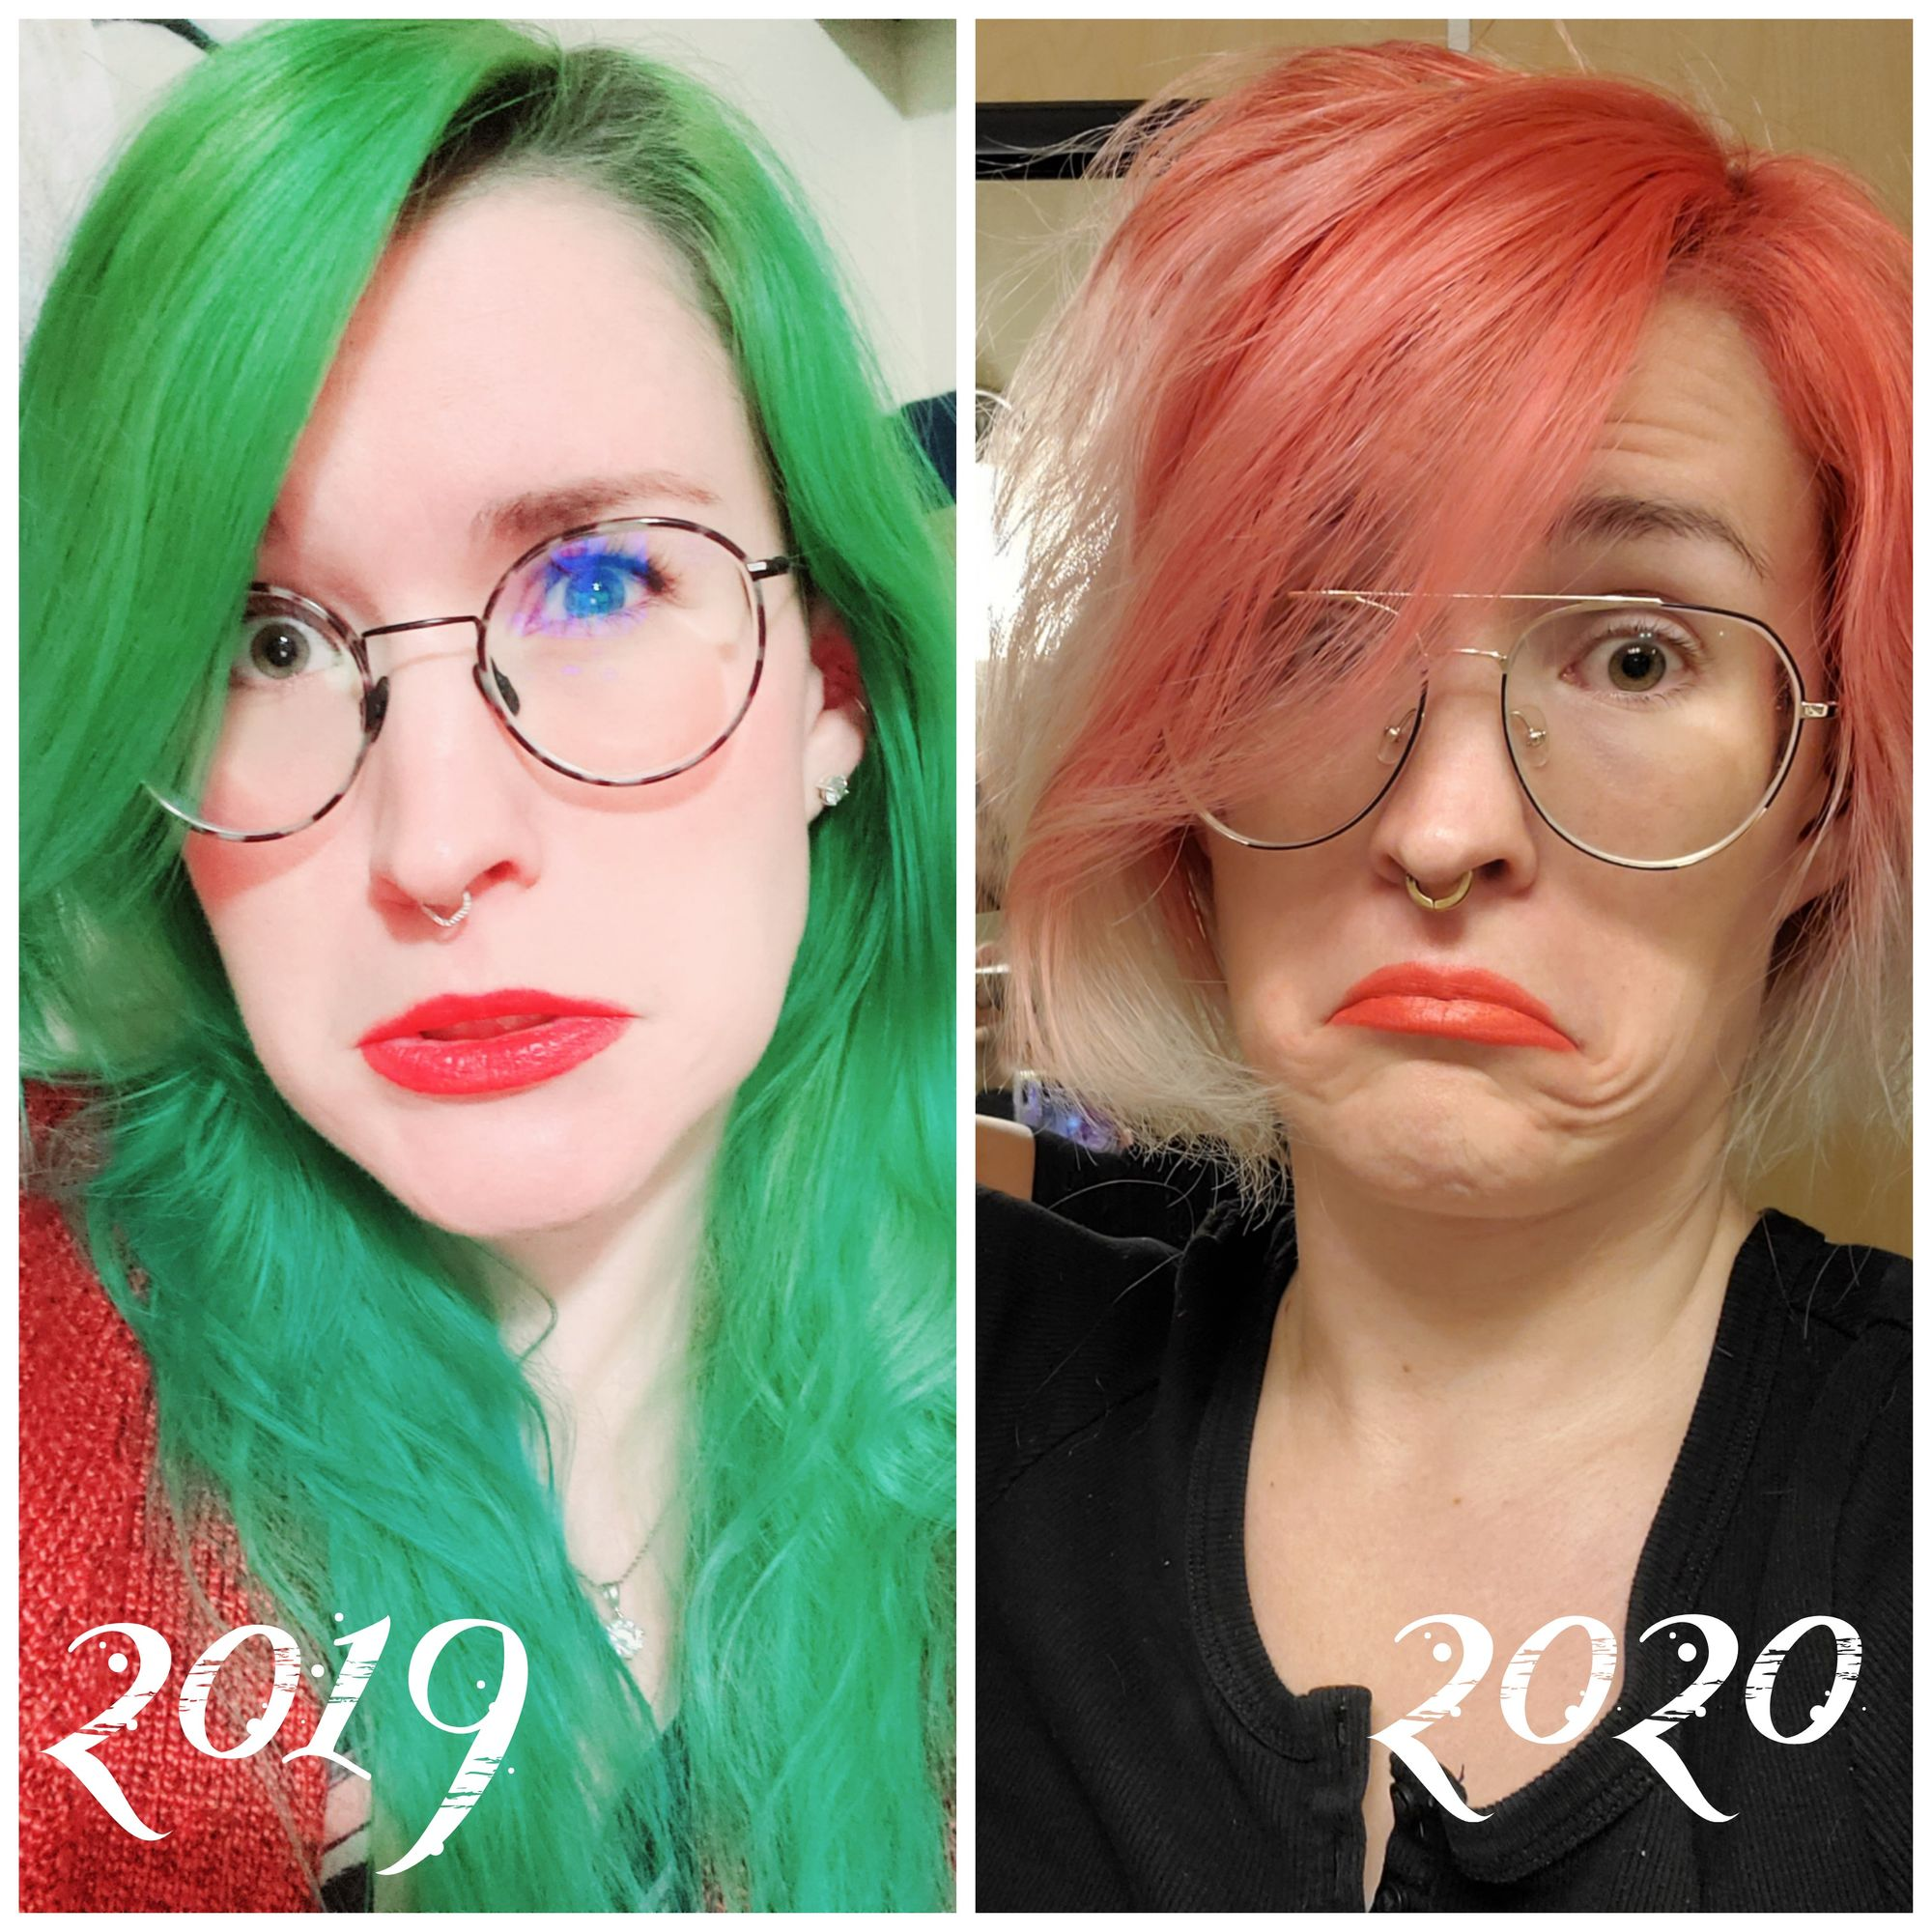 Image of me, Cakelin, on the left in 2019 and right in 2020. I am a light skinned/white, femme, non-binary person with a septum, glasses and green eyes. In both pictures I am making a funny expression, pulling my mouth downwards and out. 2019 me has long bright green hair, red lip stick and thin tortoiseshell oval glasses. 2020 me has peach/pink chin length hair with orange lipstick, wearing gold and black geometric glasses in an aviator style.